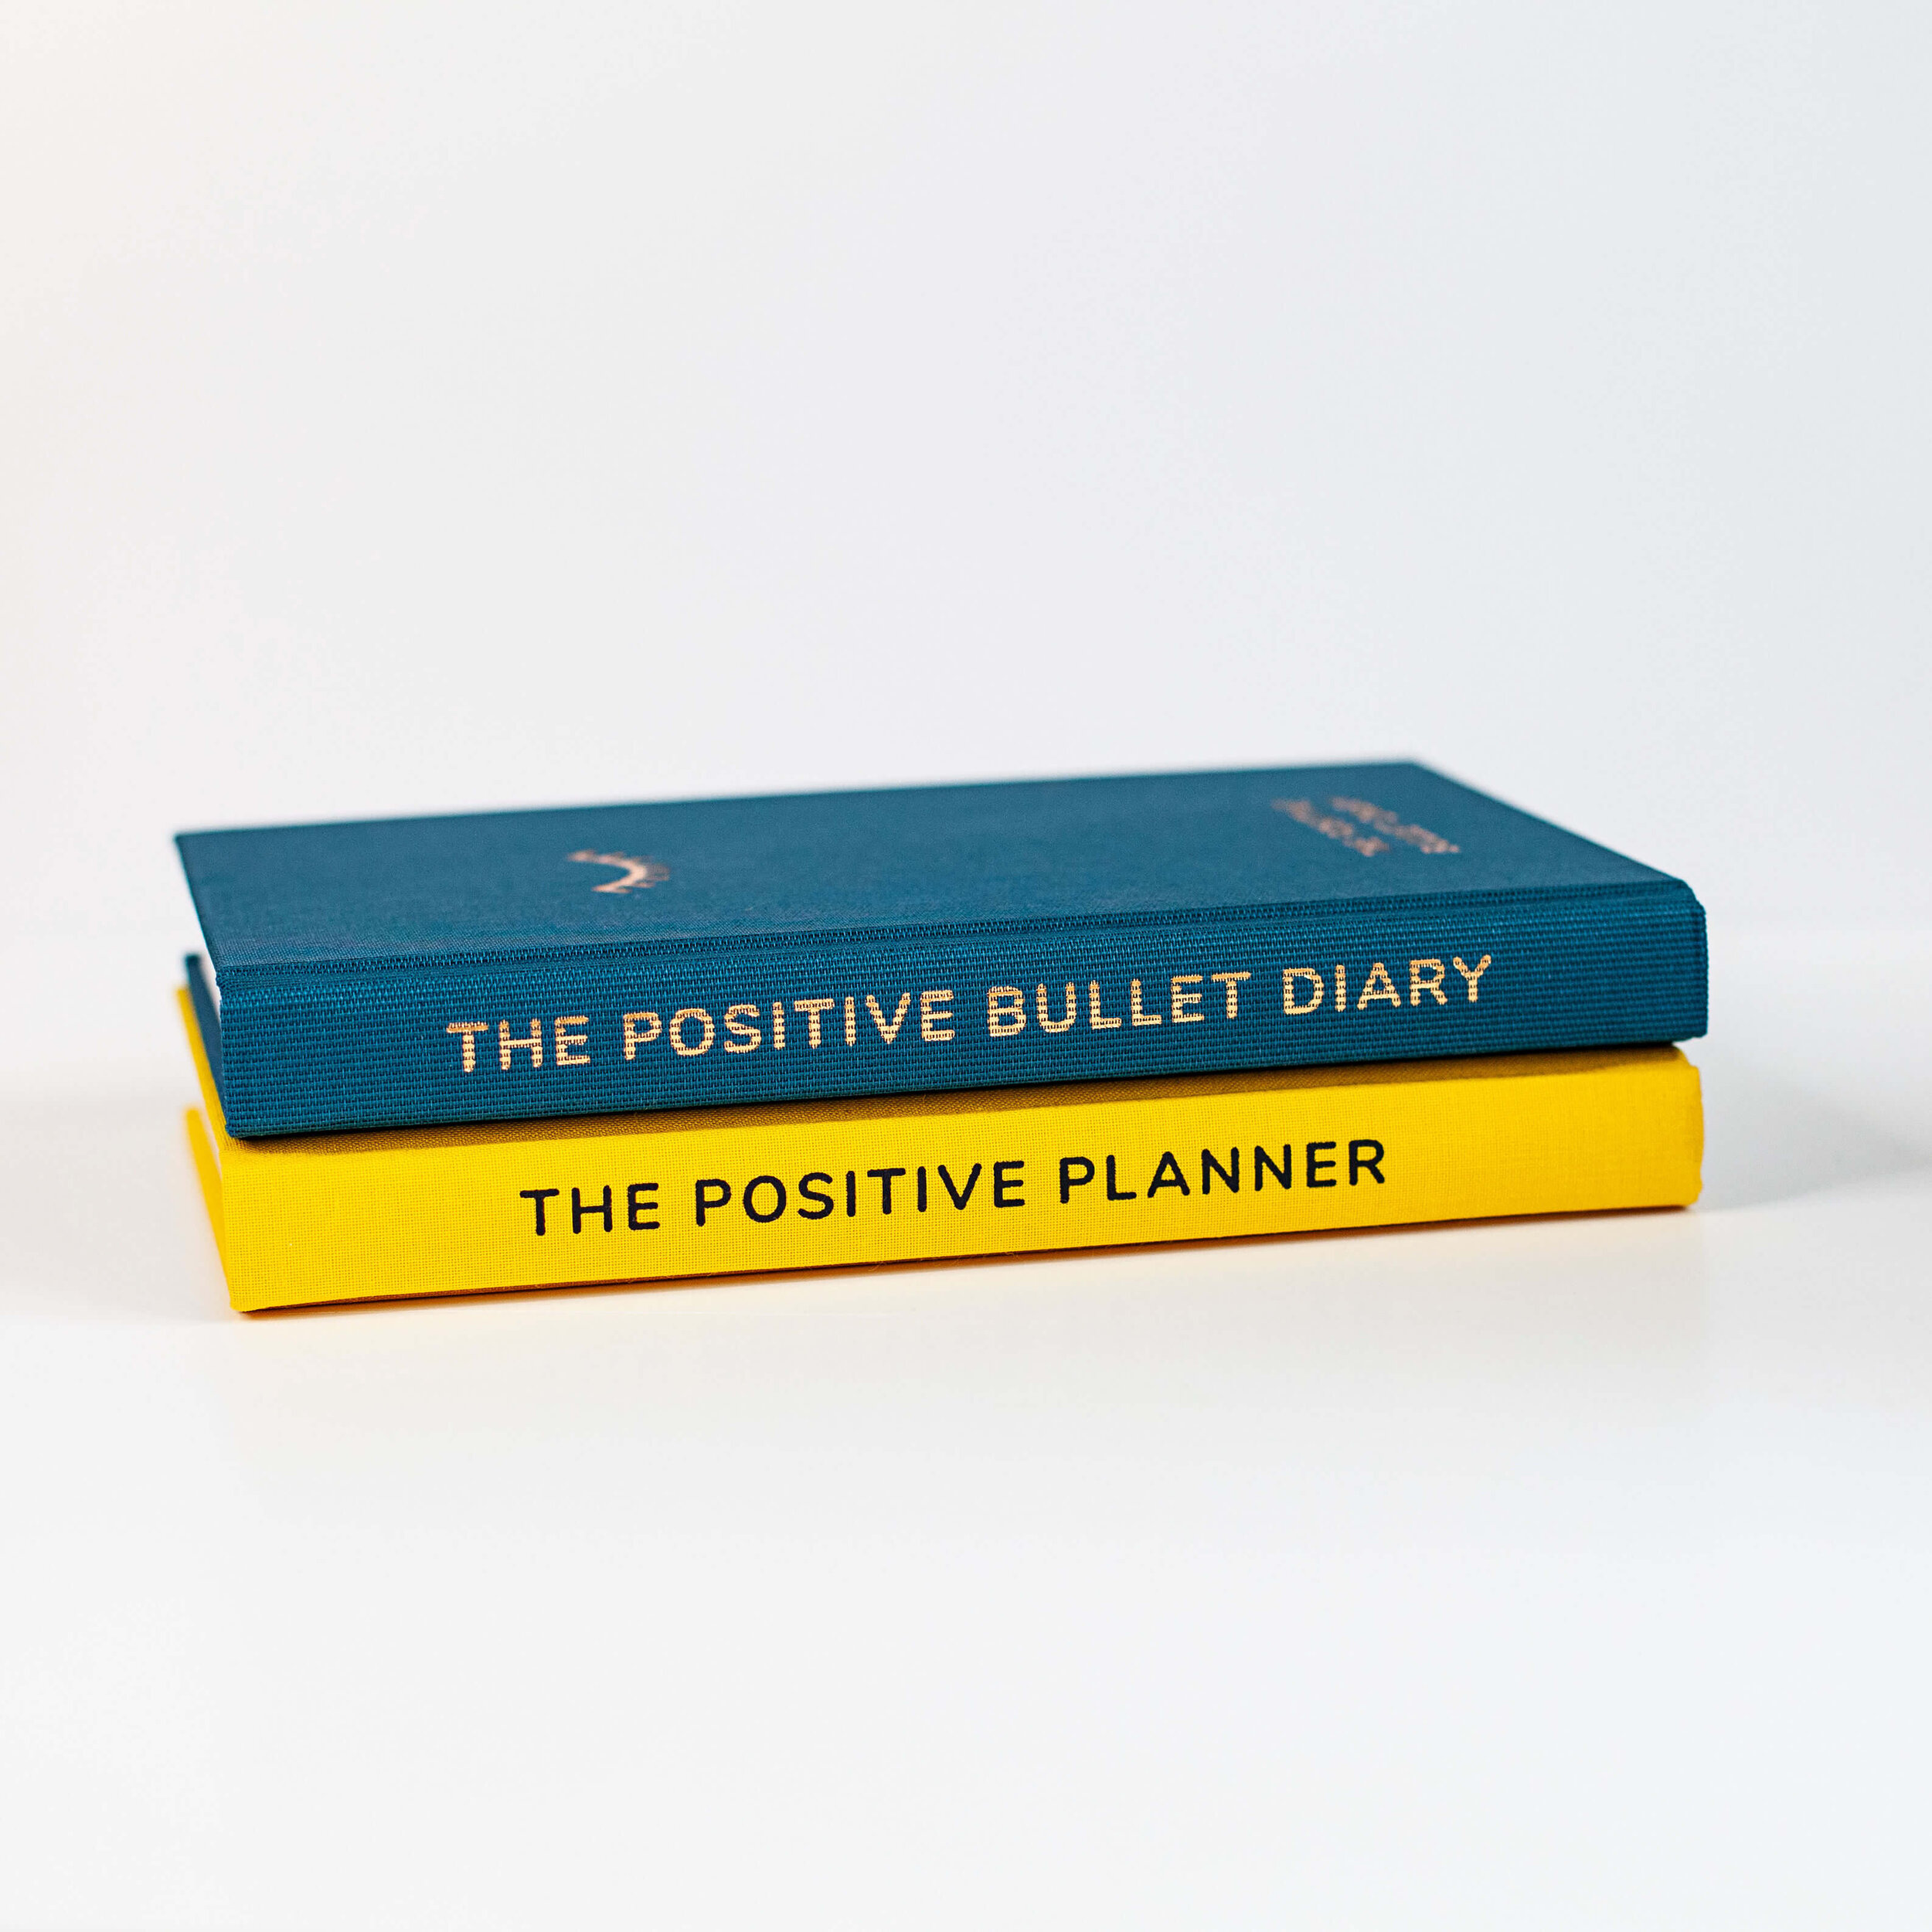 The Positive Bullet Diary and the Positive Planner